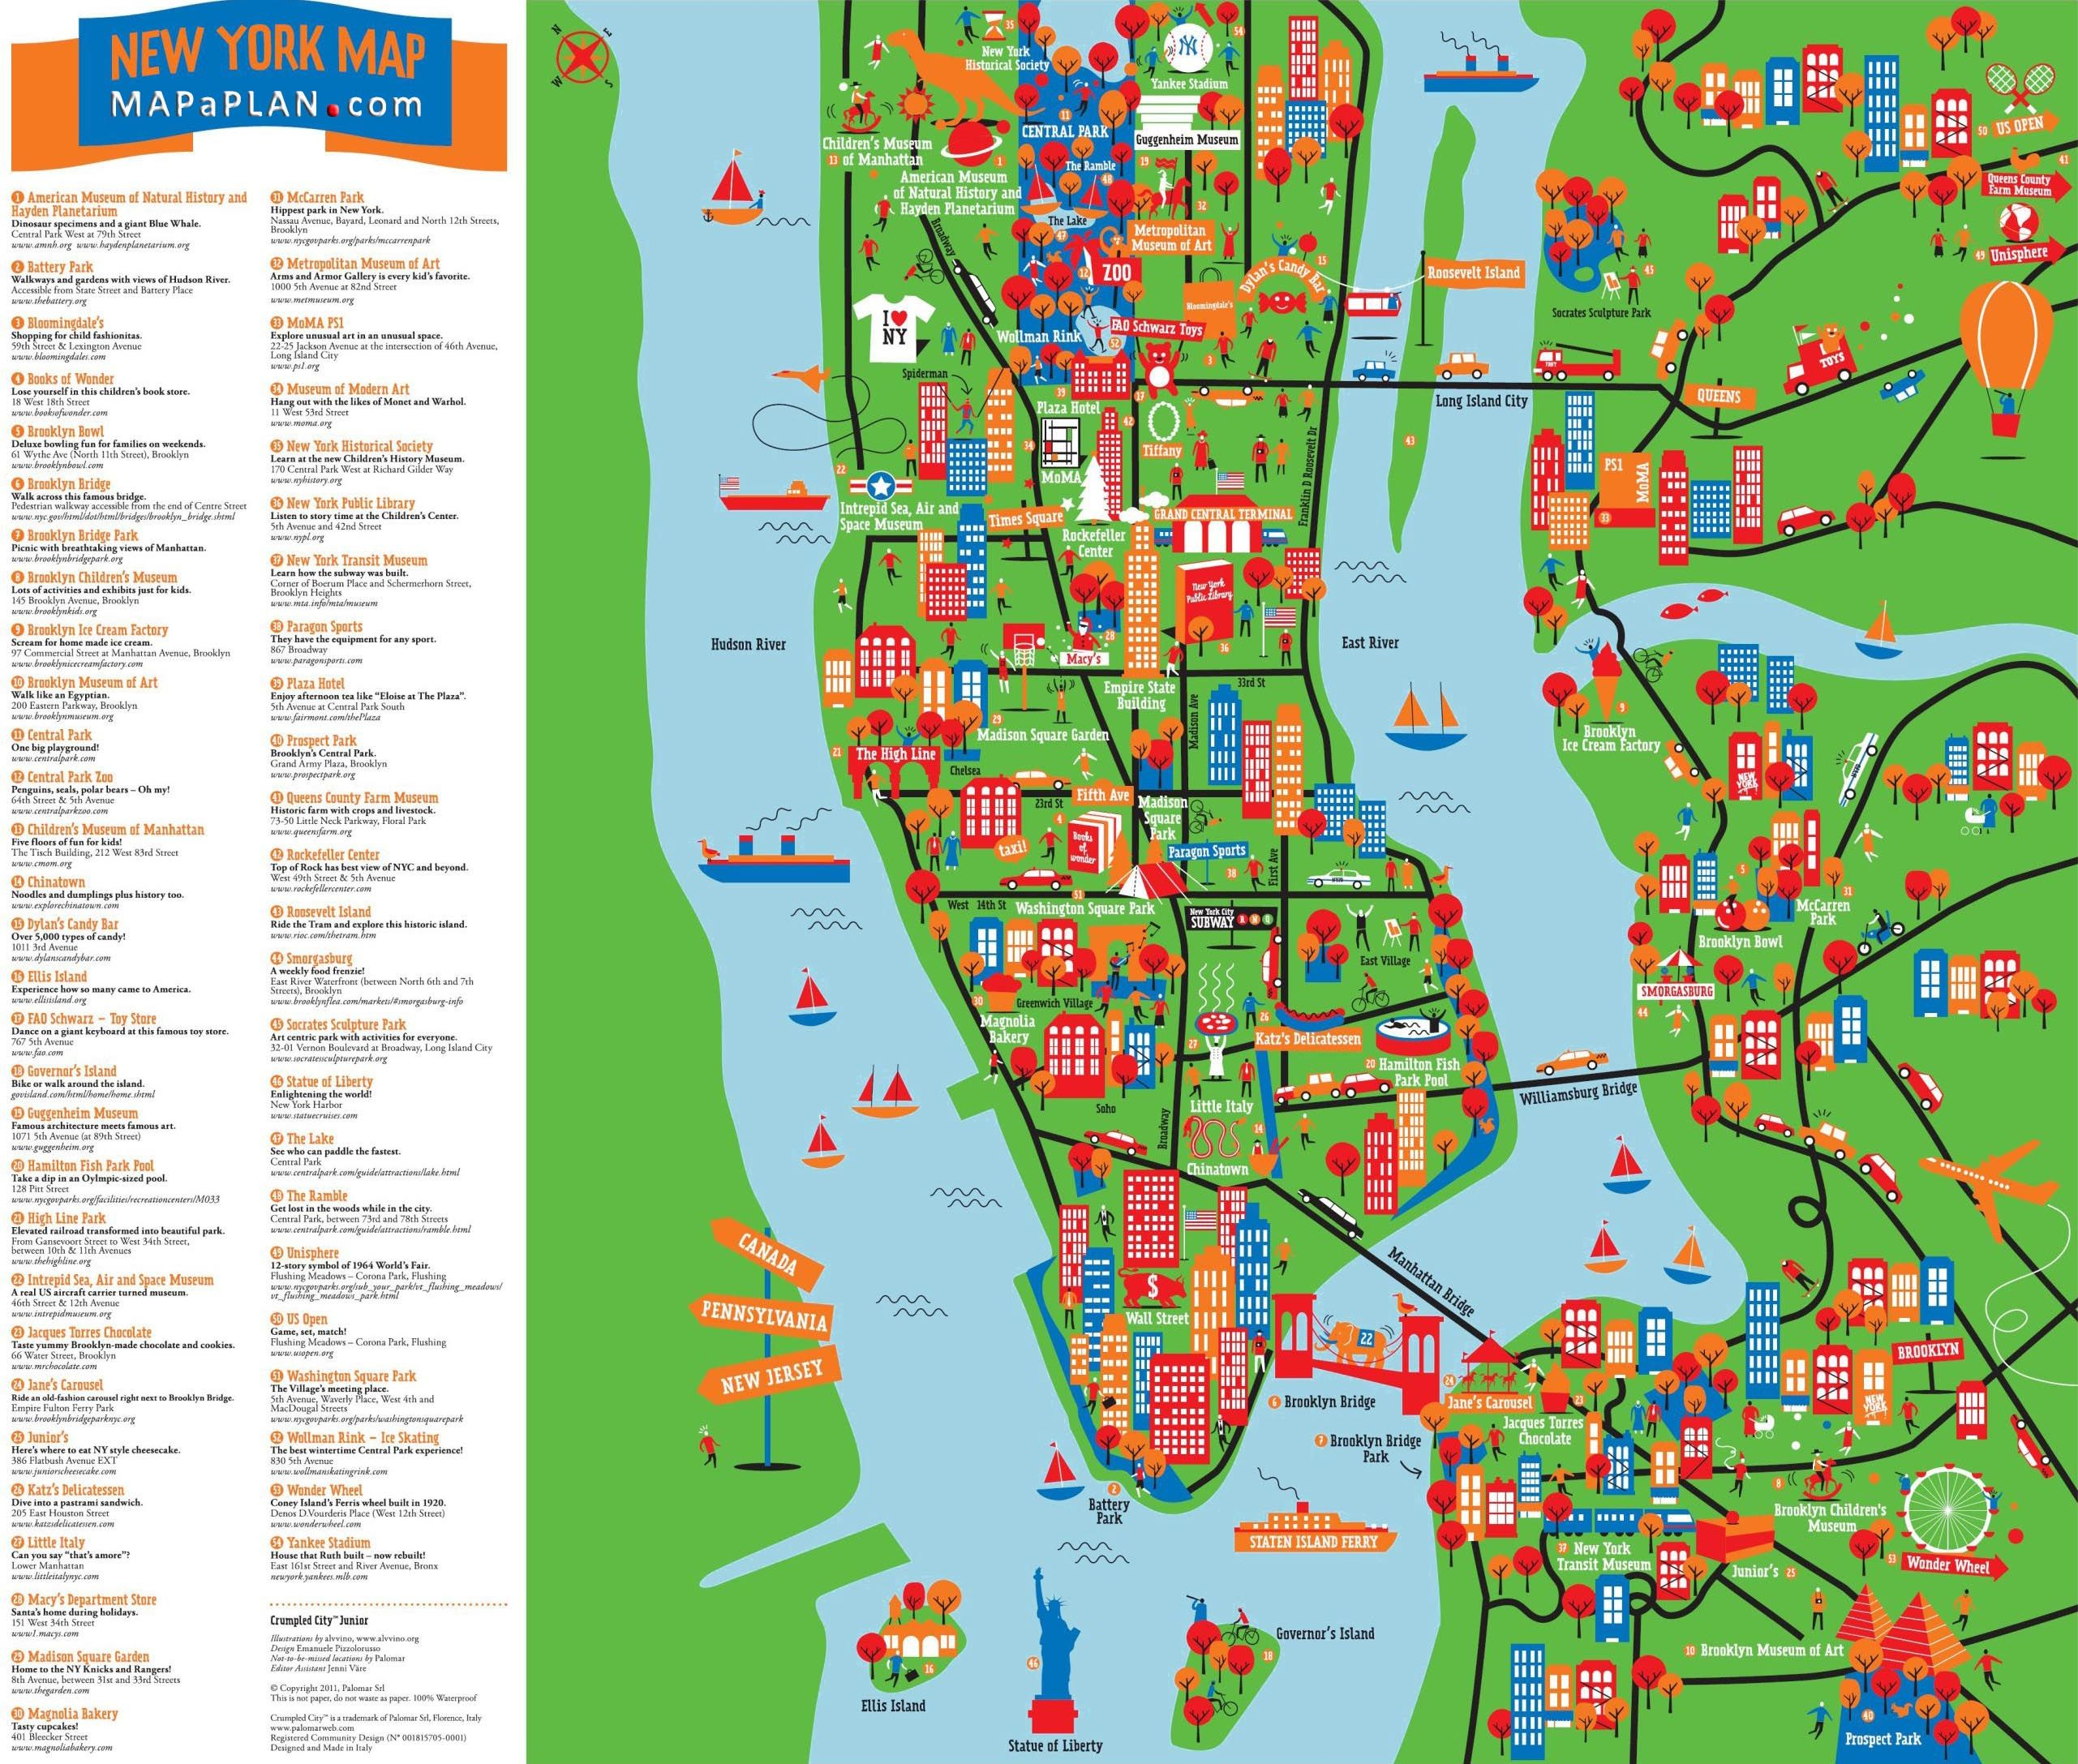 greatthingstodowithkidschildreninteractivecolorfulnew – Printable Nyc Tourist Map